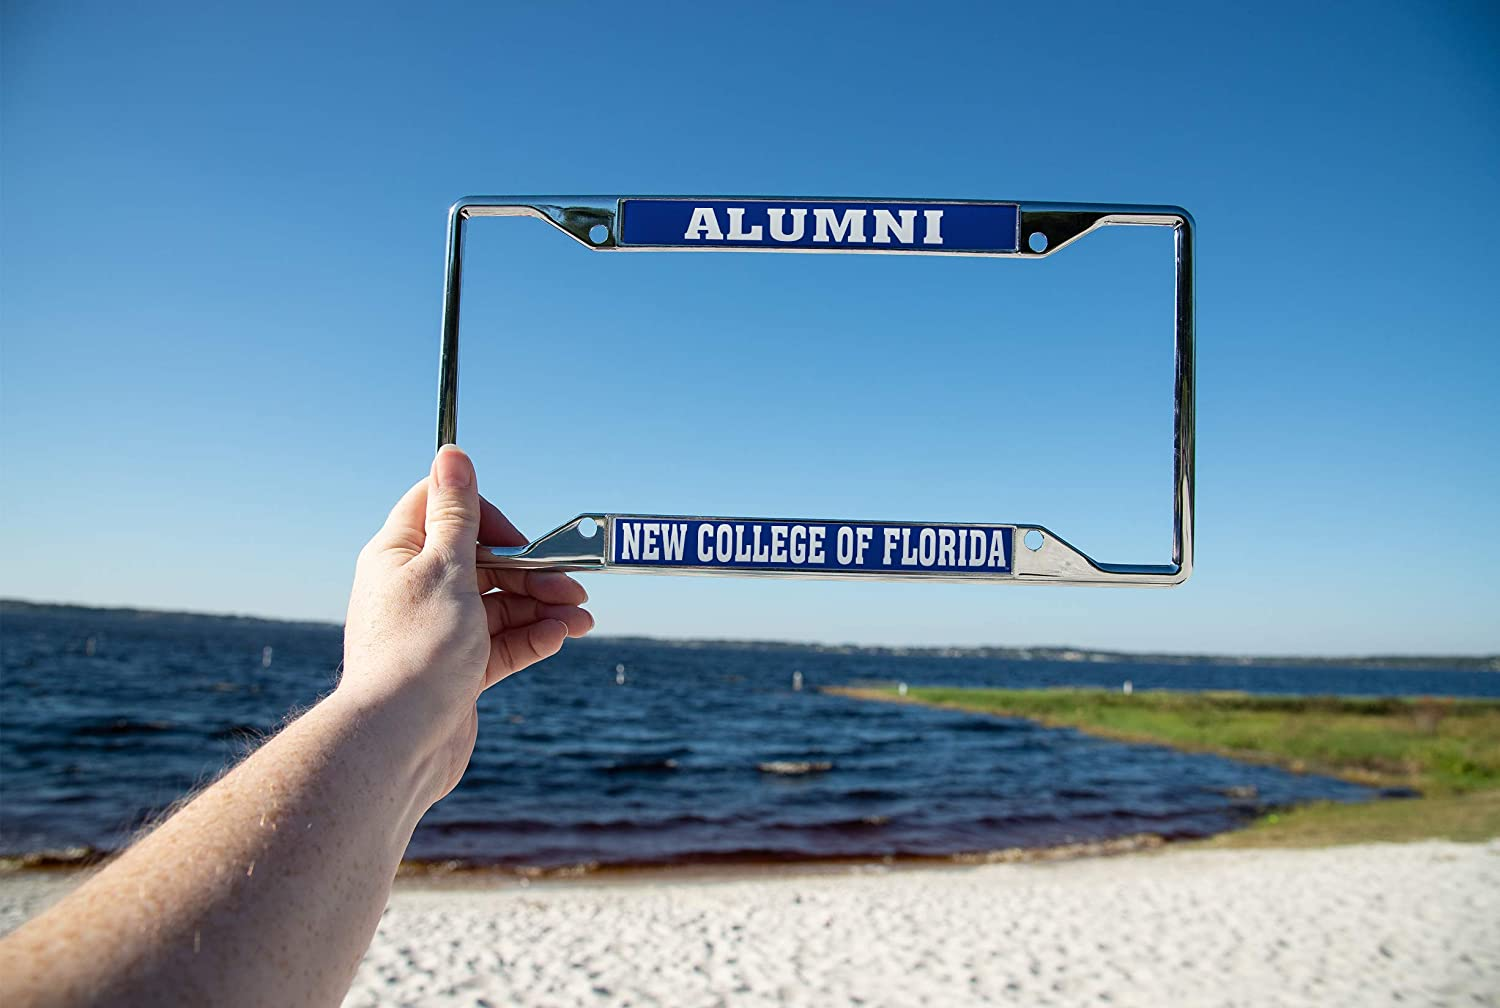 Desert Cactus New College of Florida NCAA Metal License Plate Frame for Front or Back of Car Officially Licensed Alumni